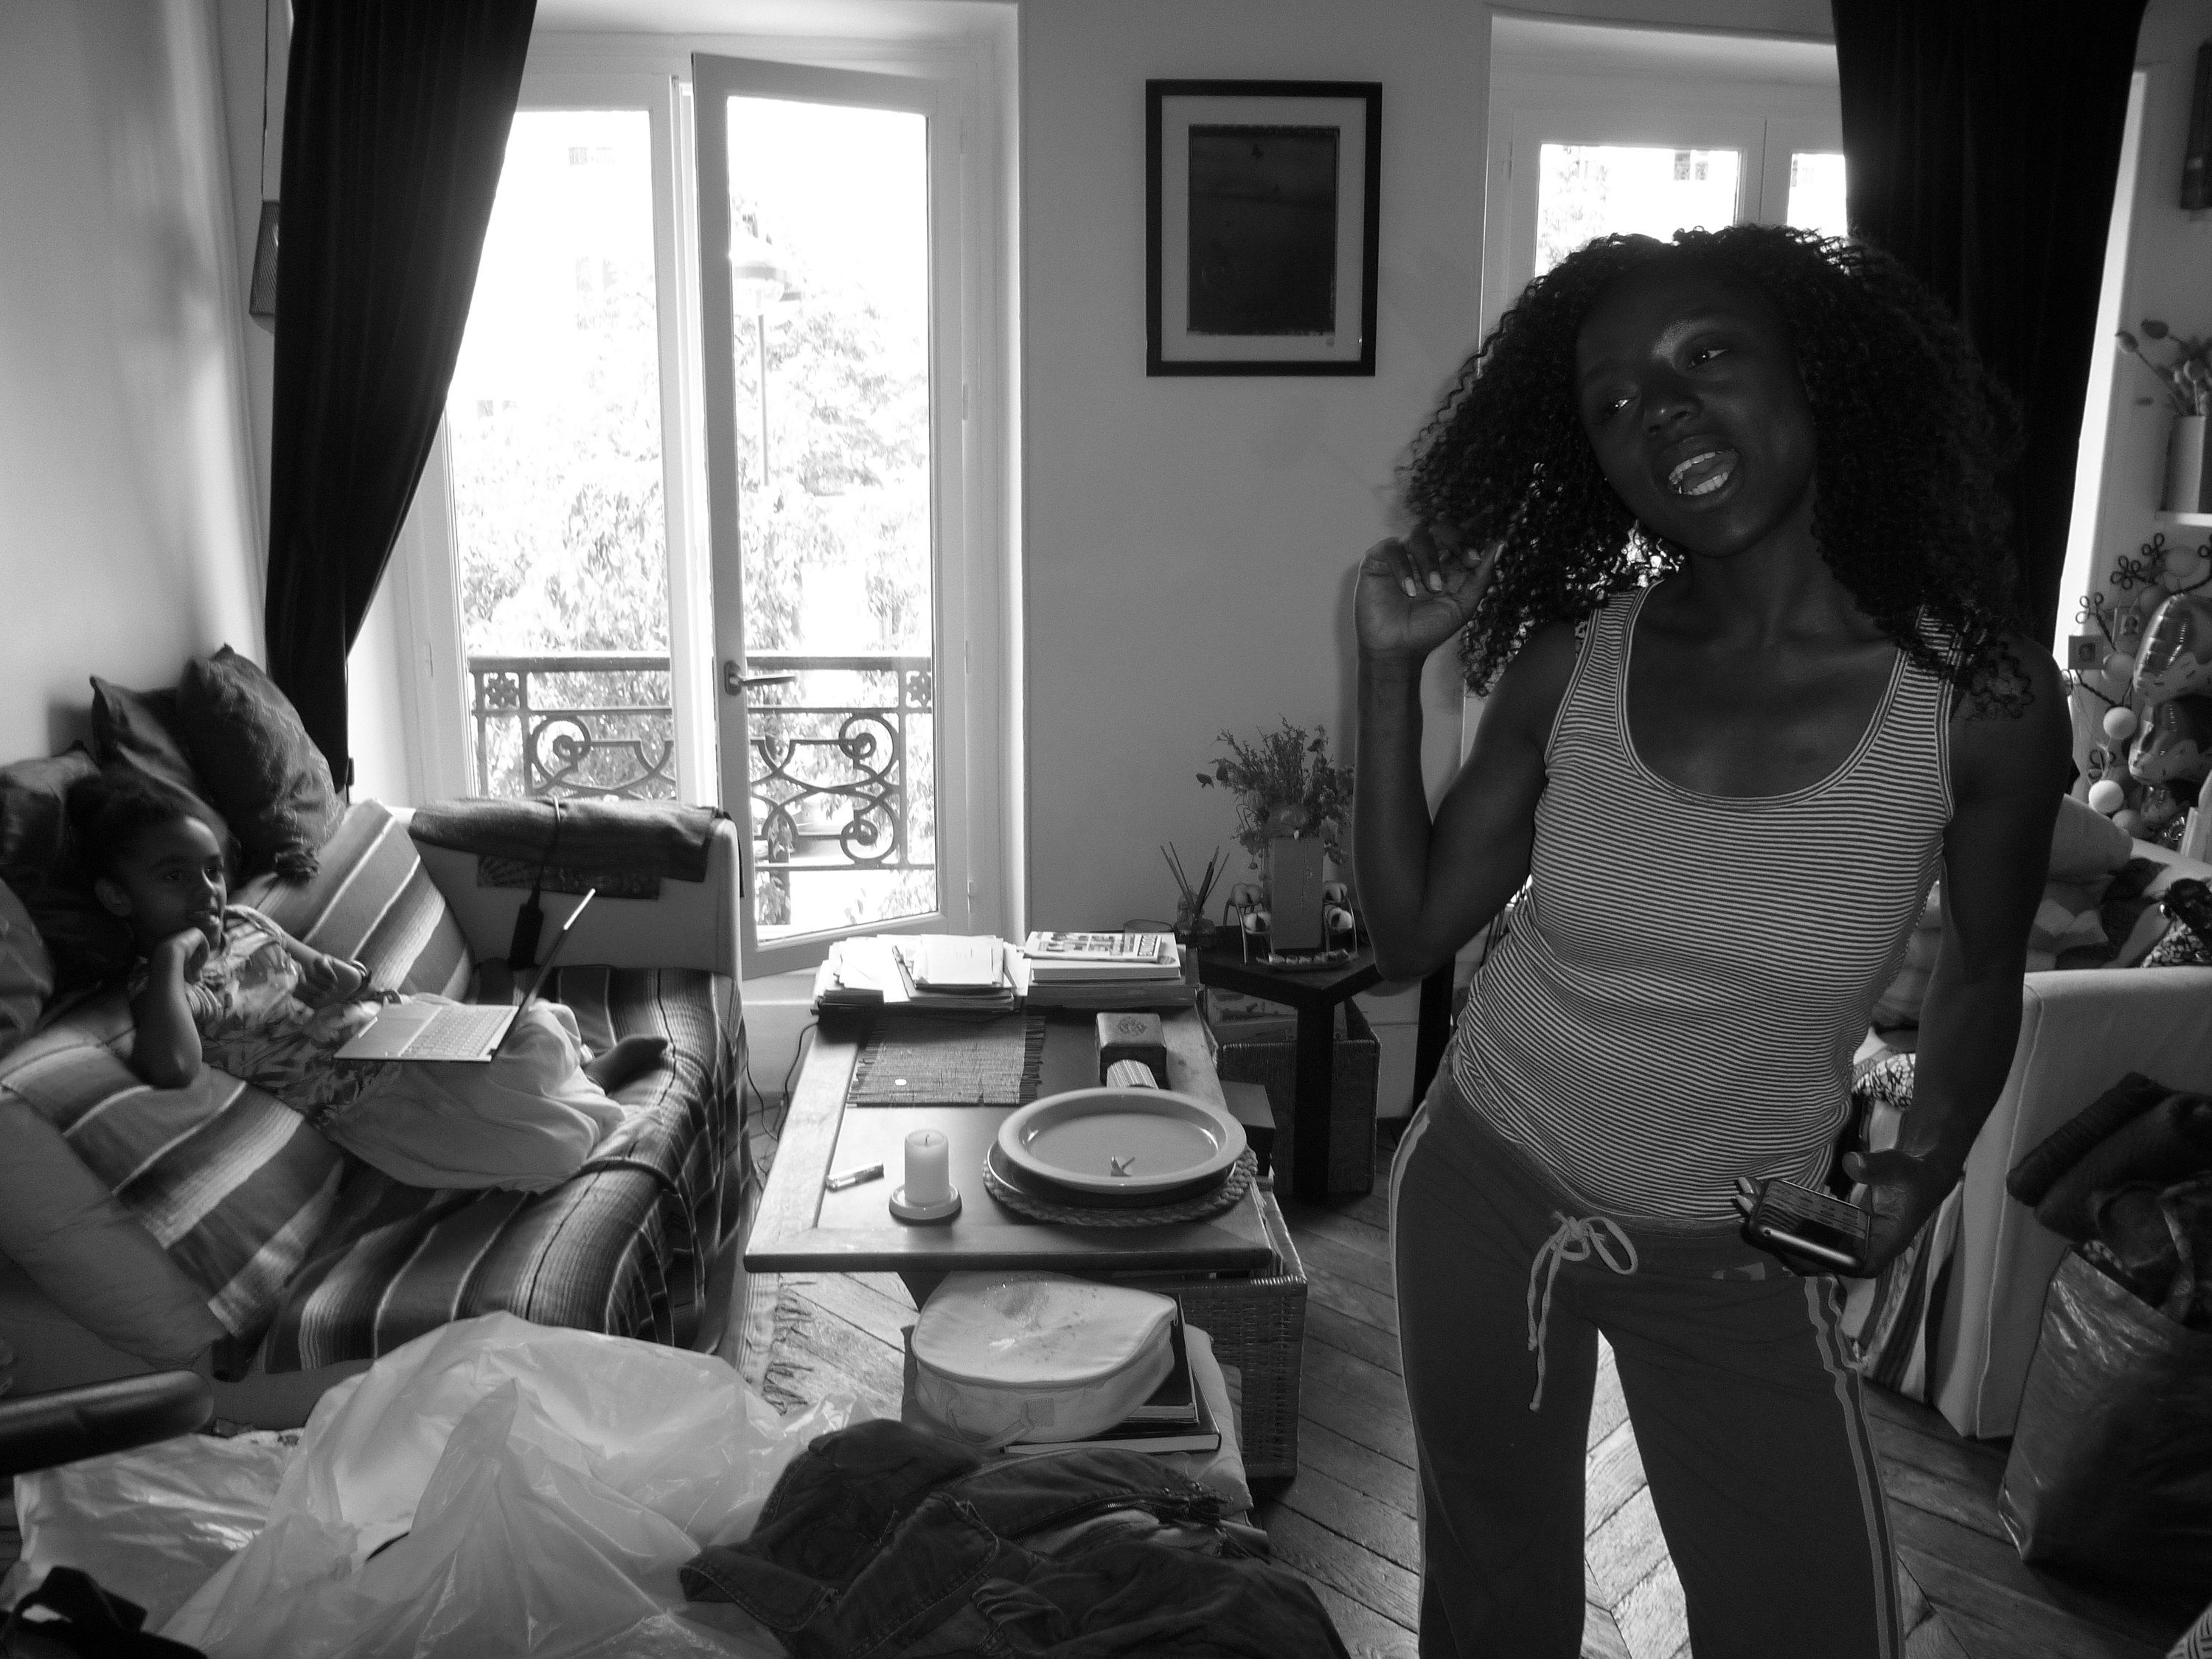 A woman stands in her apartment while her young daughter watches